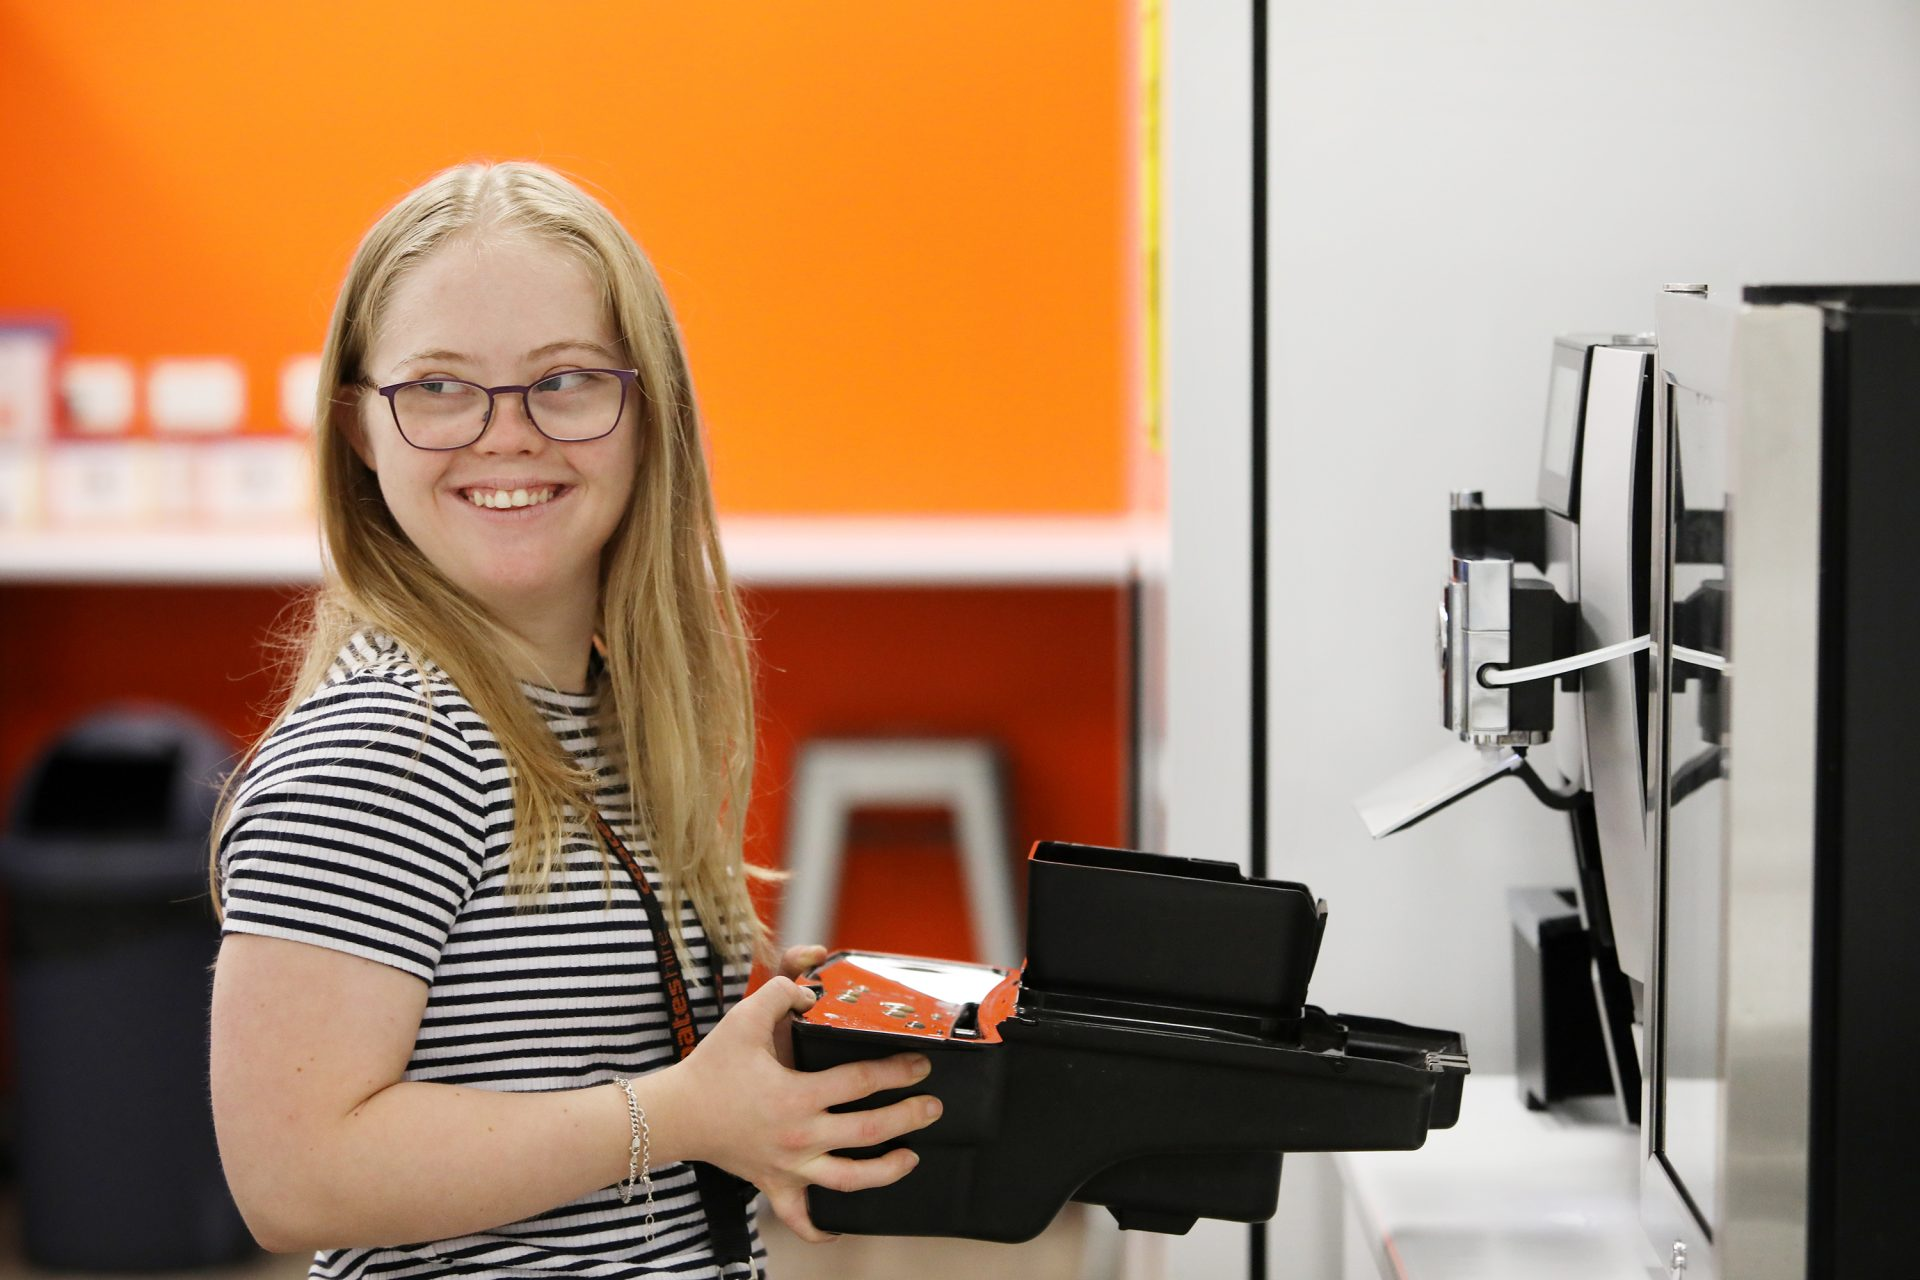 A young women with long blonde hair and glasses is cleaning a coffee machine in an office kitchen. She is smiling and looking out of the frame.